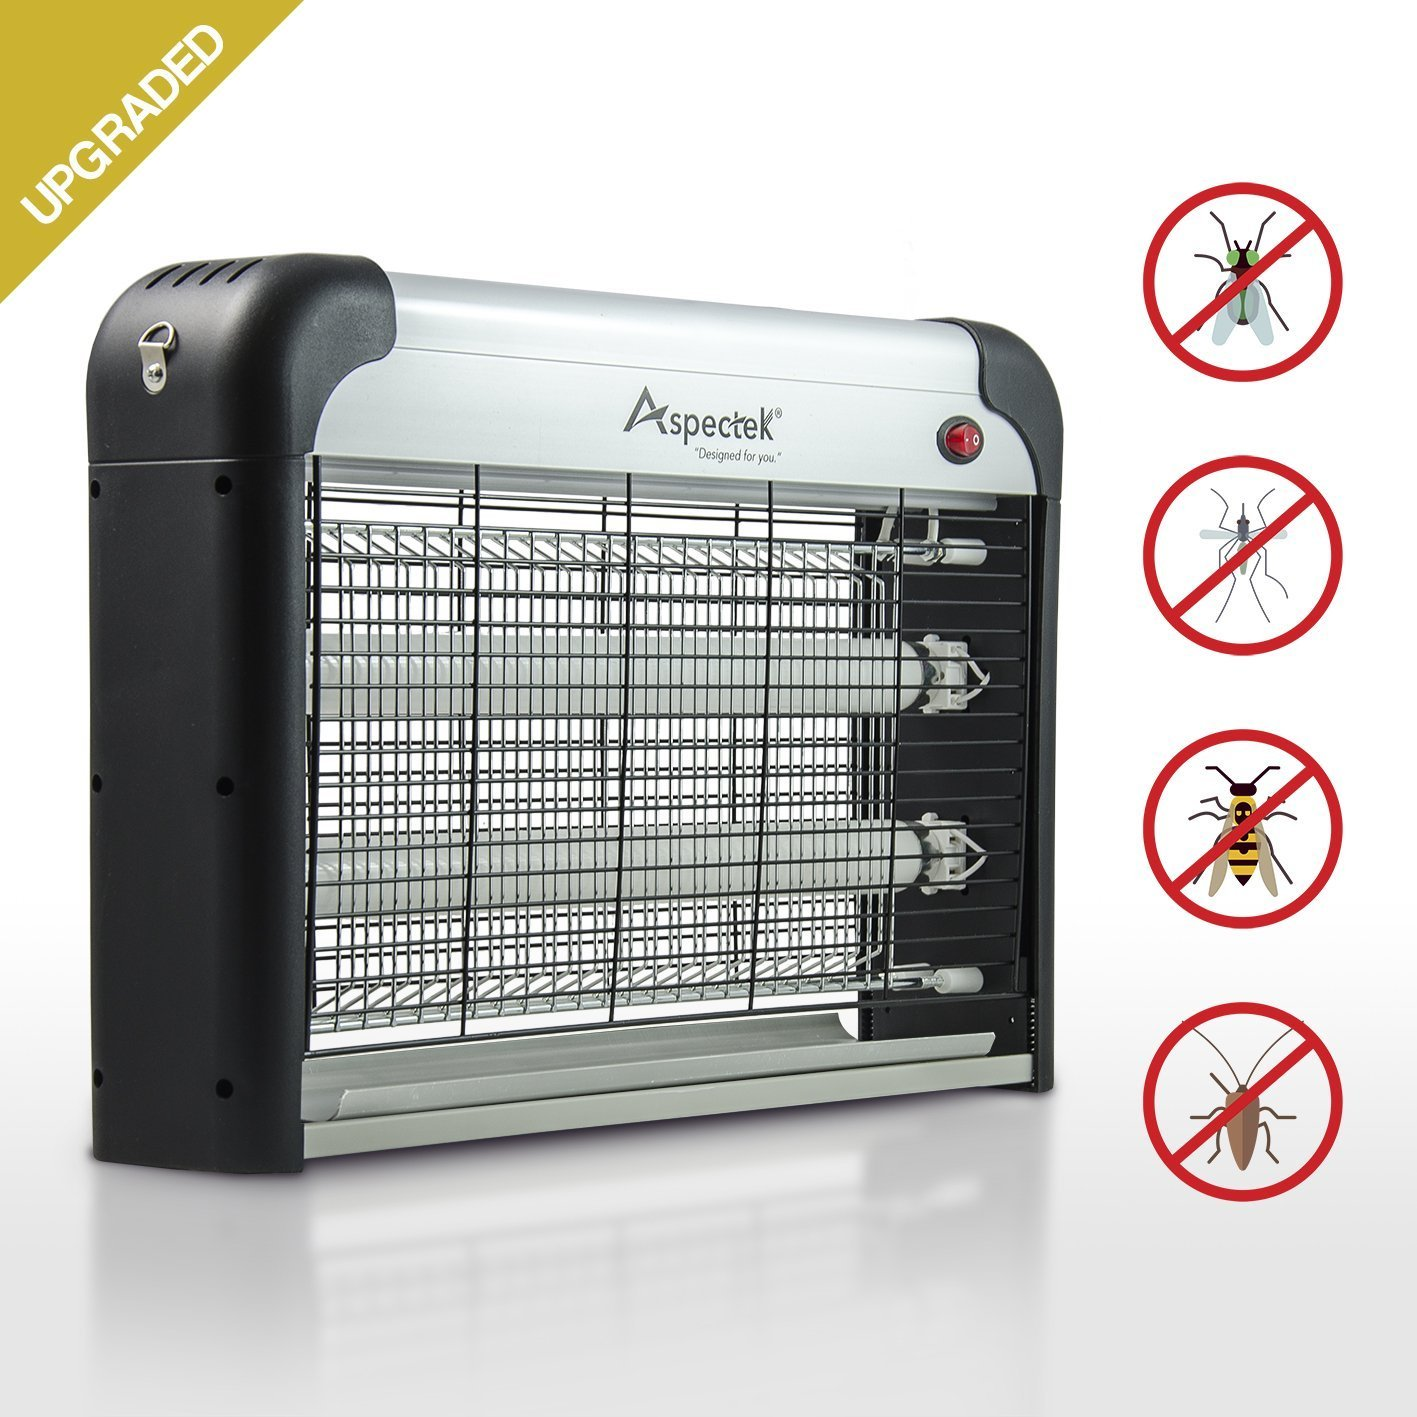 Aspectek 20W 6000sqft Coverage Electric Indoor Commercial Insect and Mosquito Killer